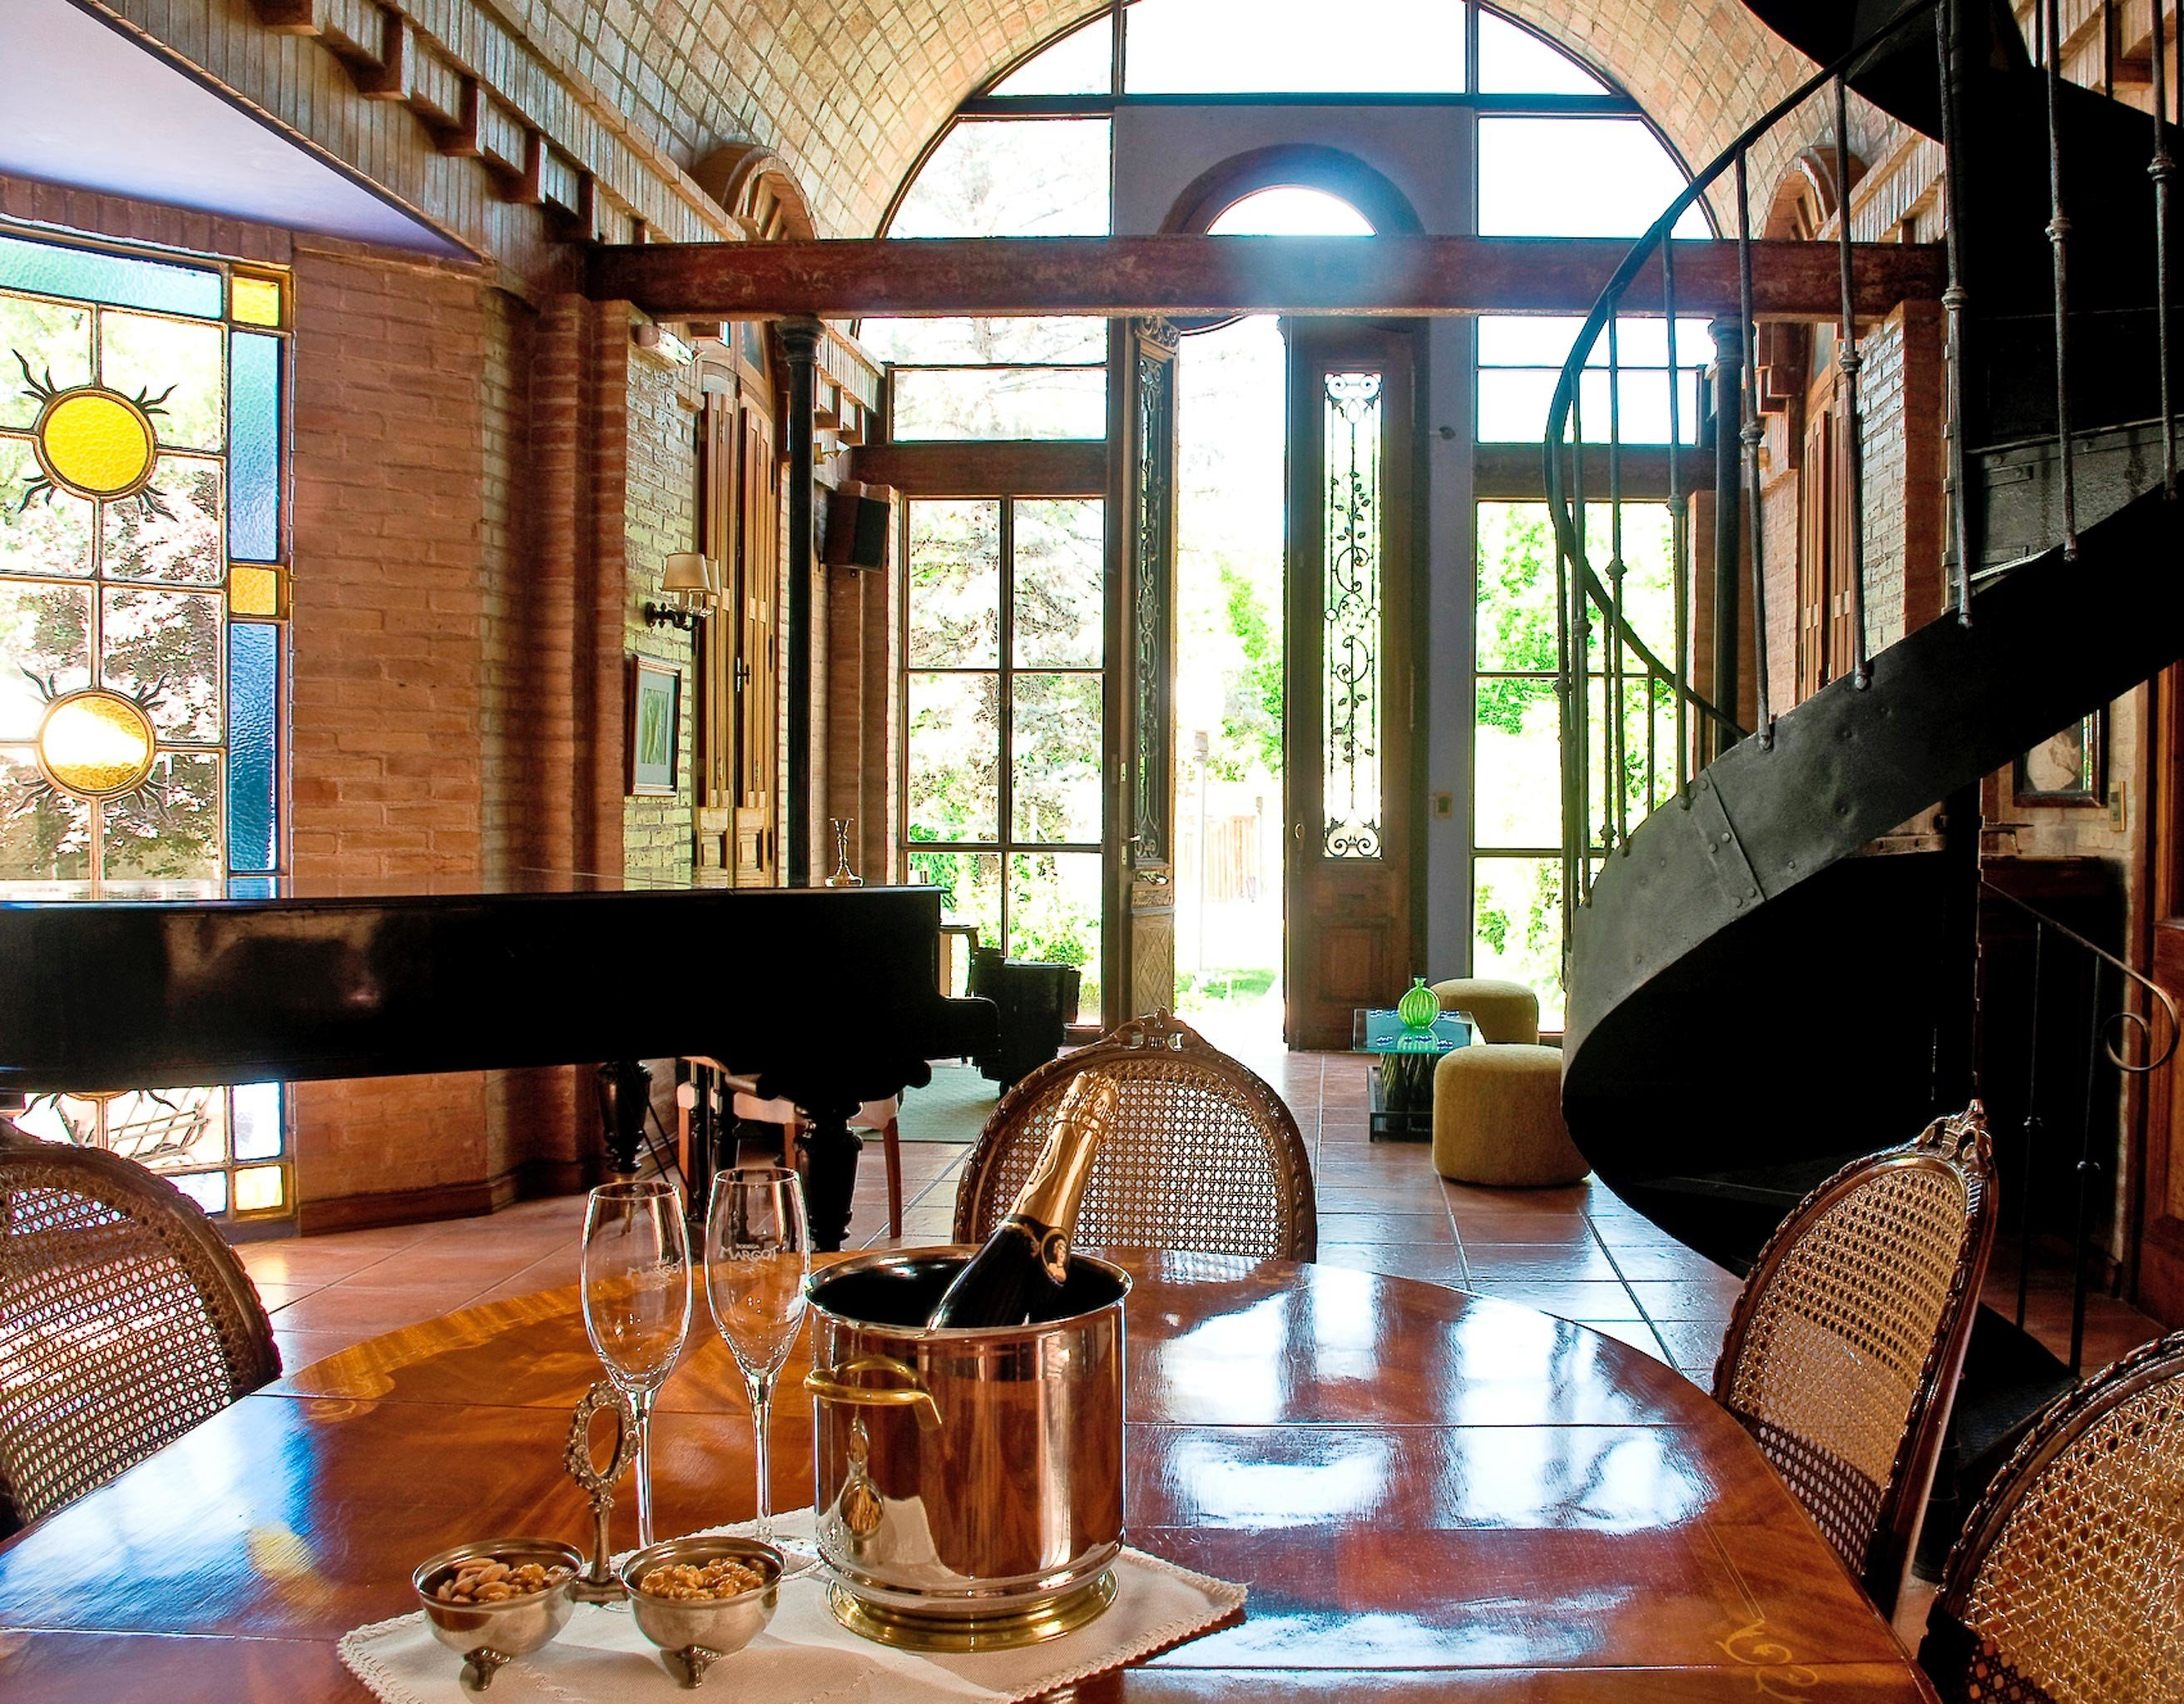 Boutique Dining Drink Eat Luxury property restaurant home living room cottage Resort Villa farmhouse Bar dining table